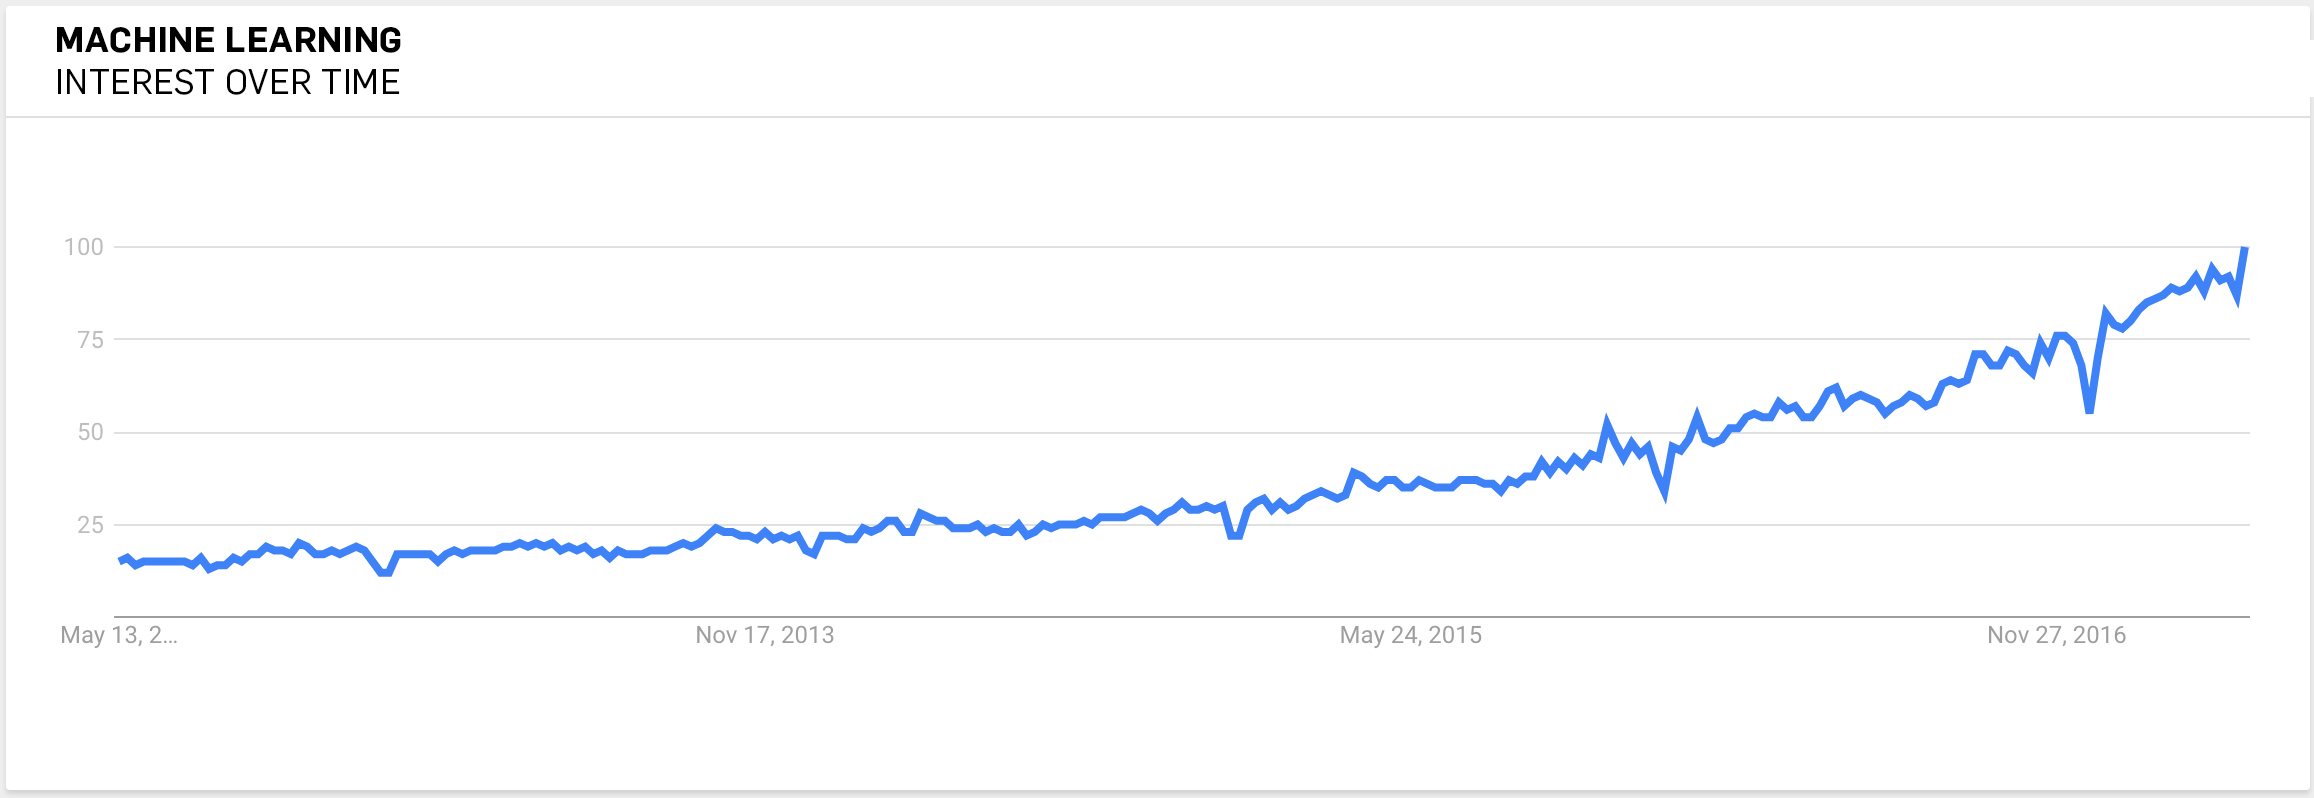 Machine Learning Google Trends Interest over Time